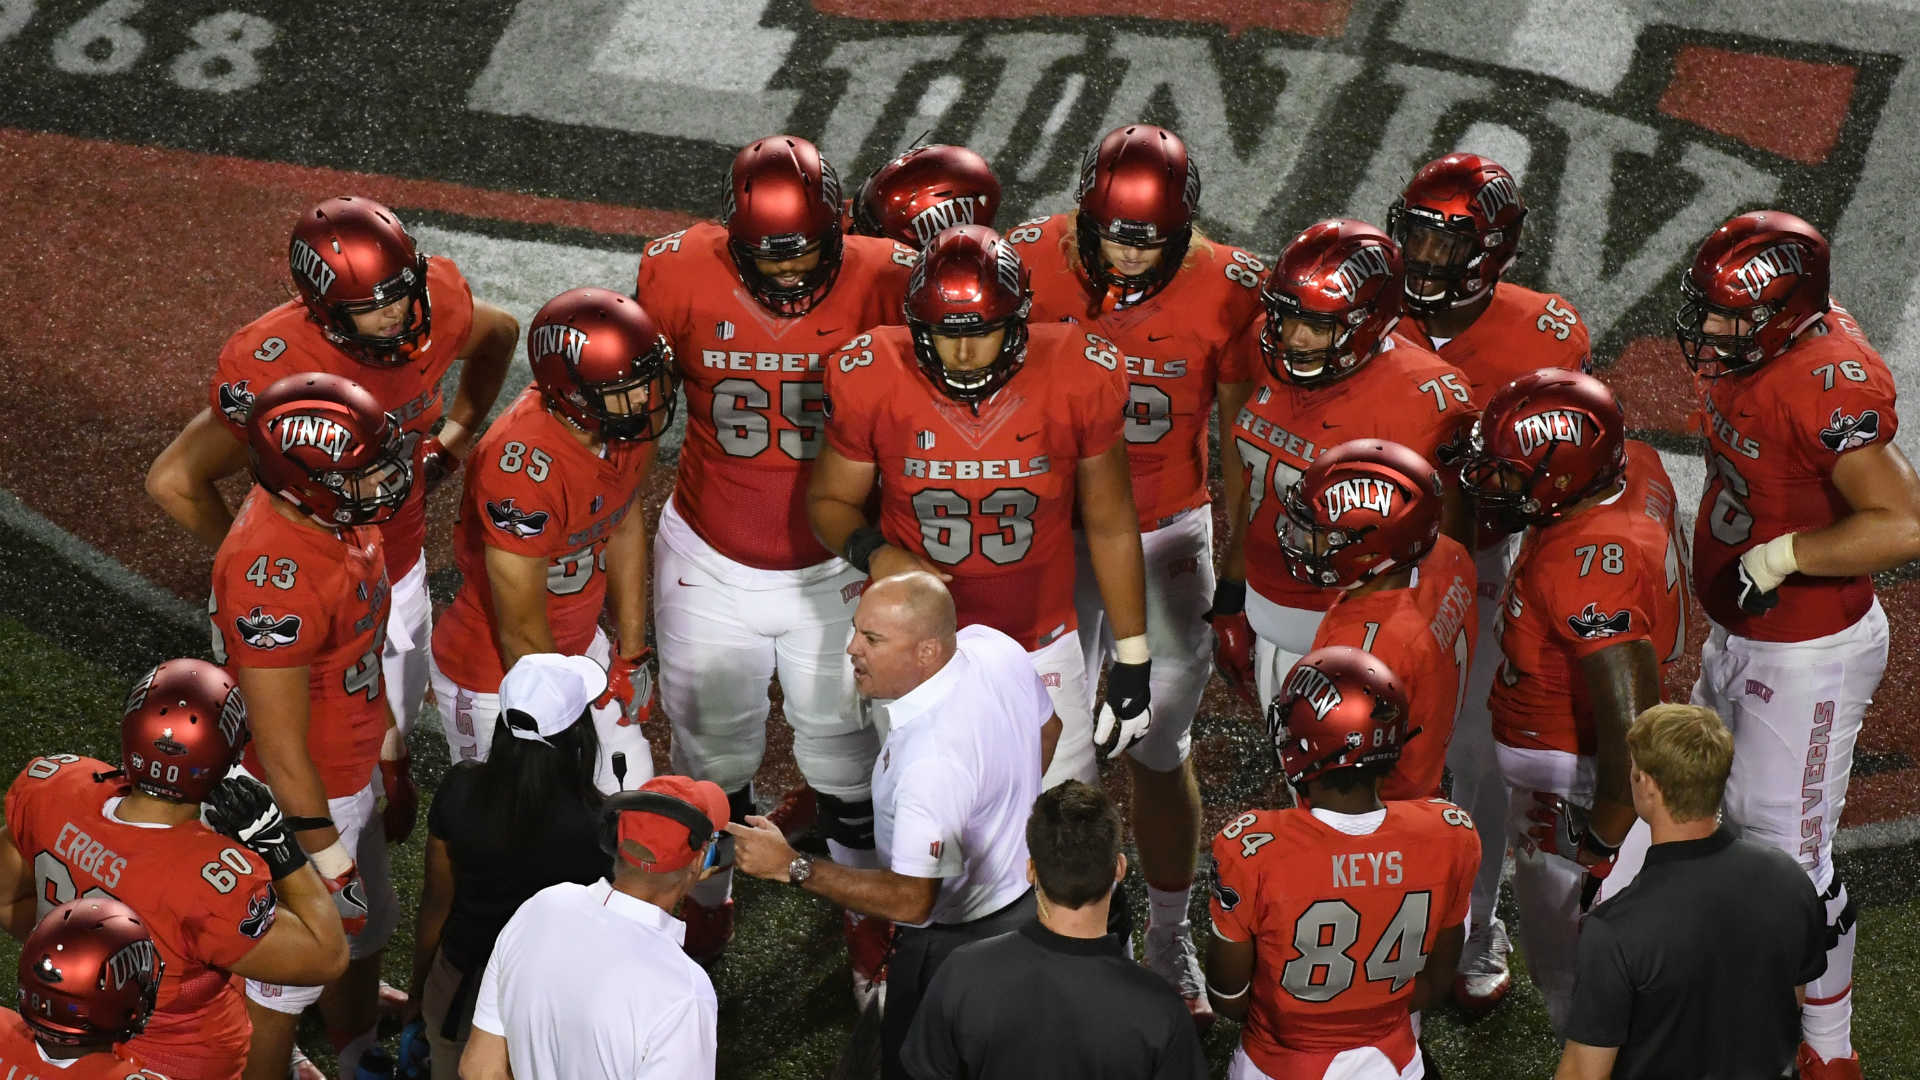 San Diego State at UNLV game designated 'Heroes Night' after shooting